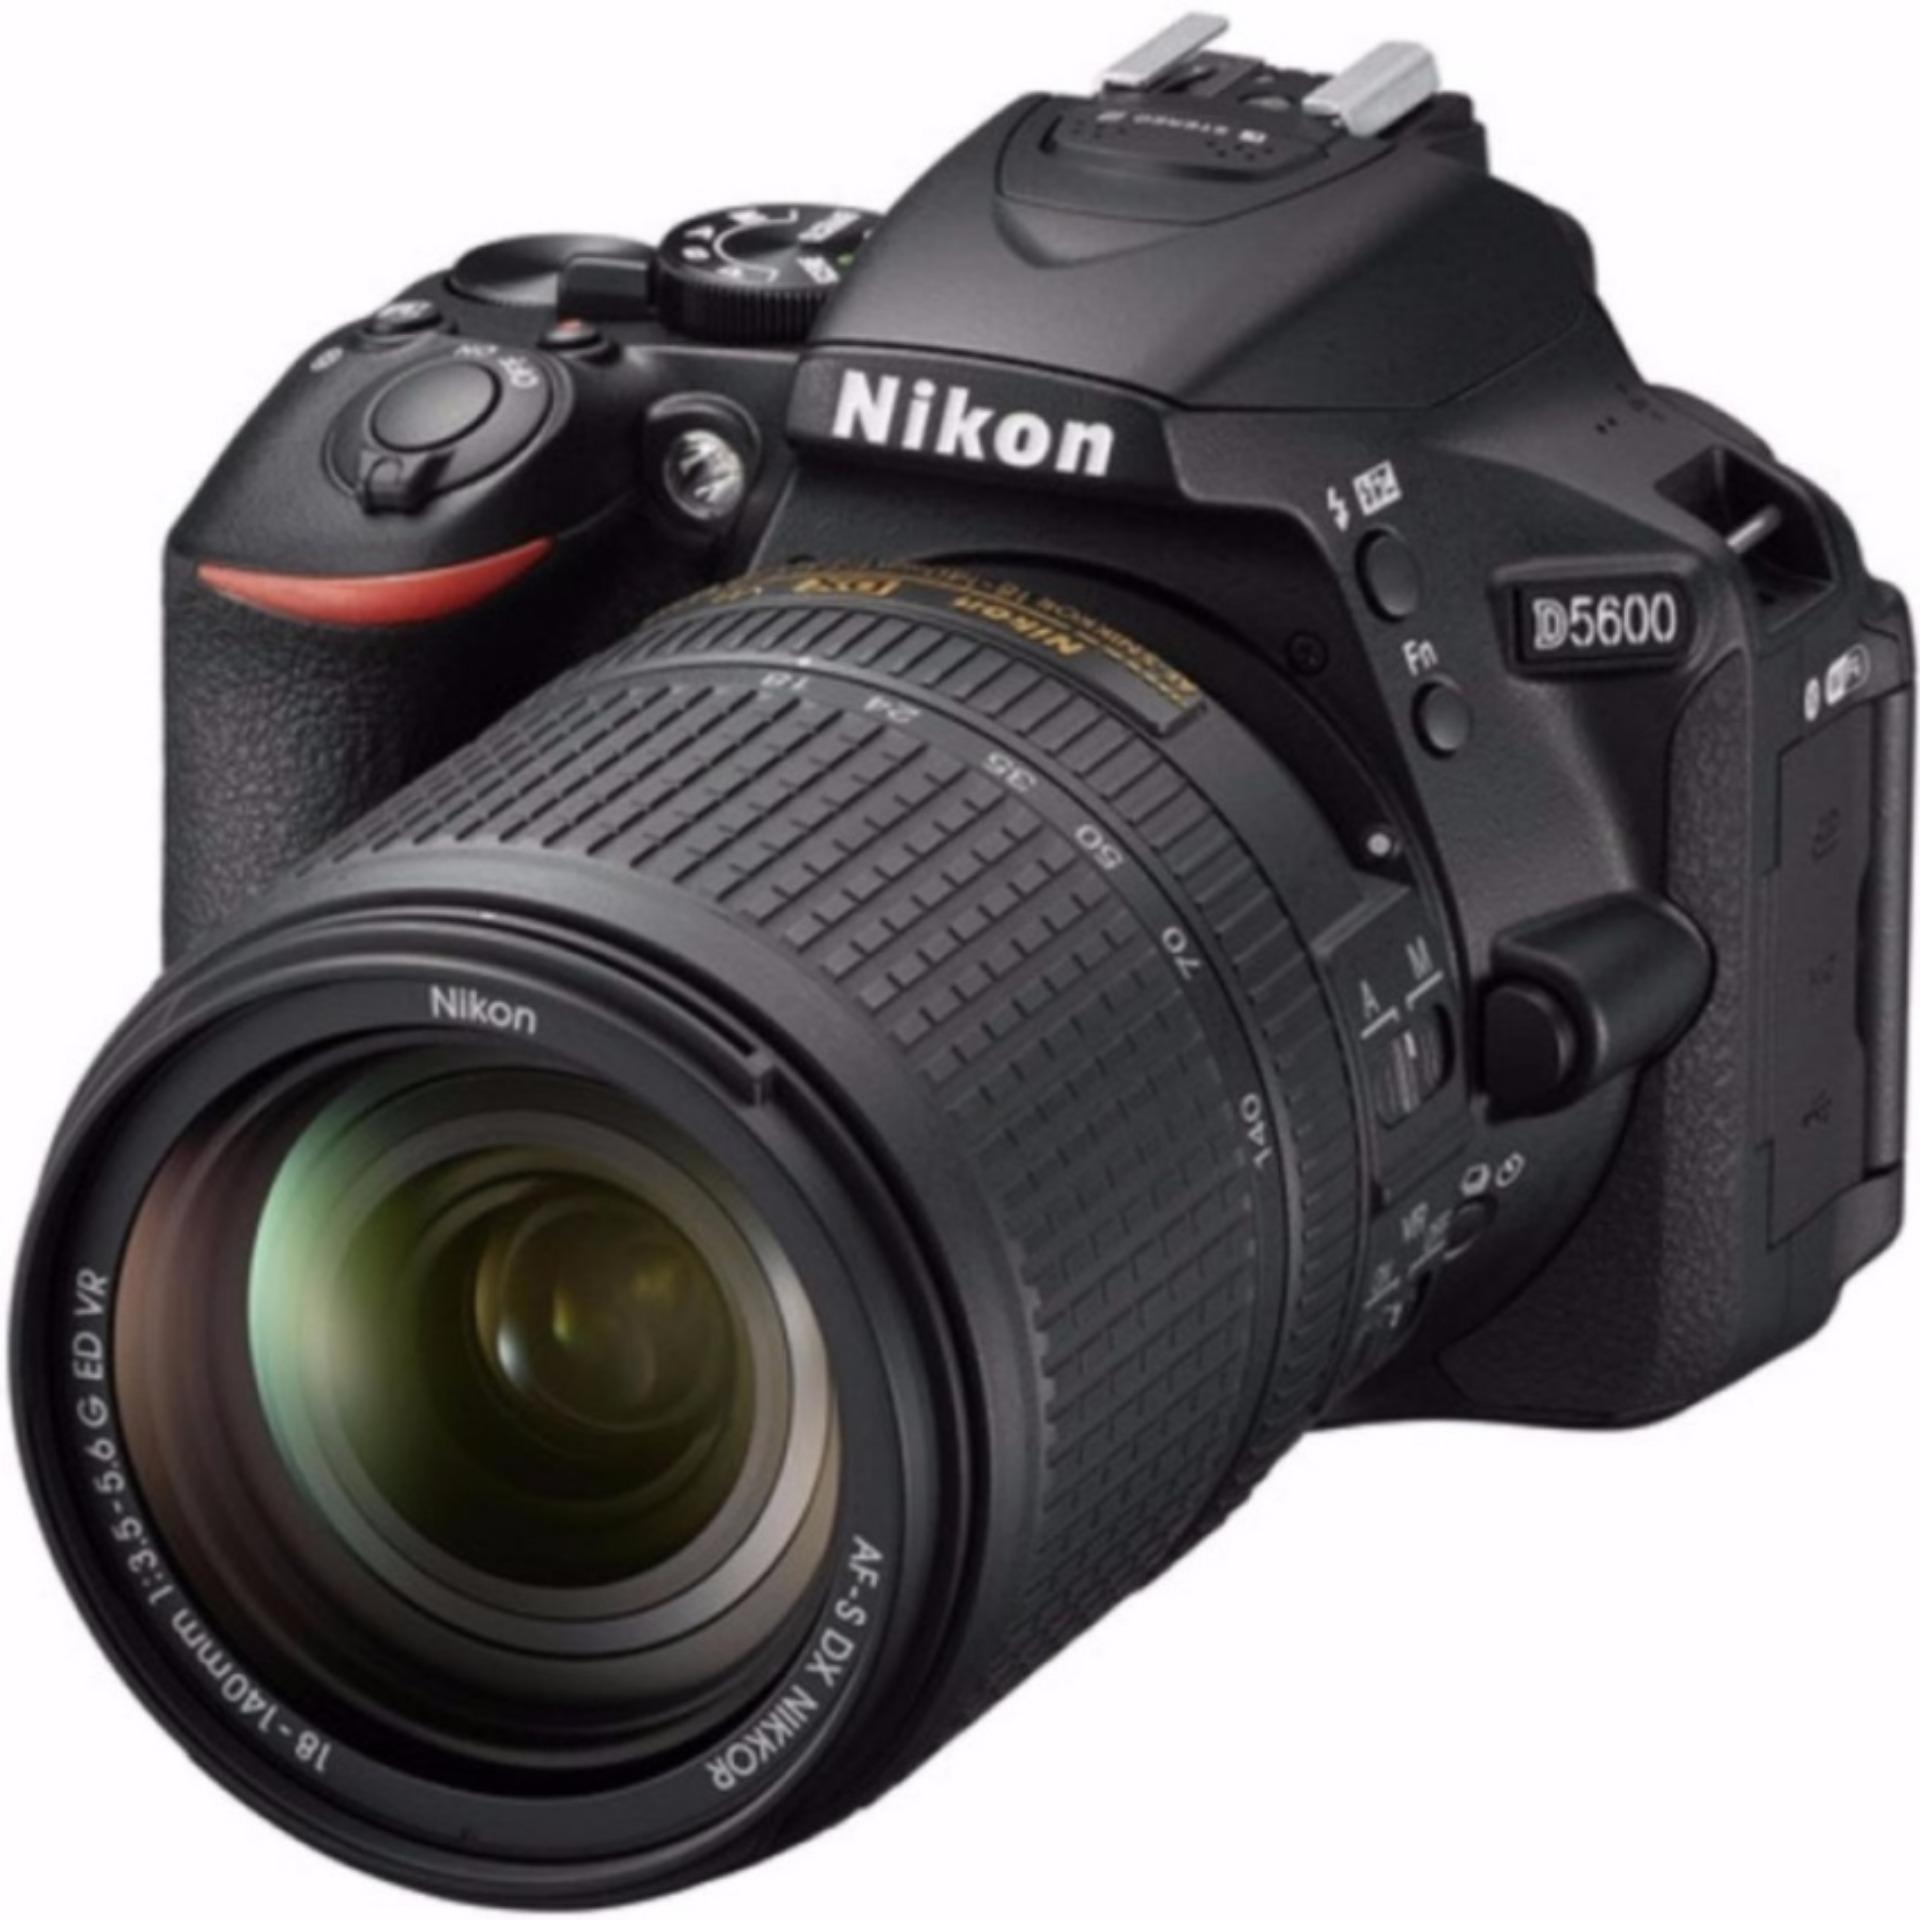 (Local Warranty) Nikon D5600 w/18-140 + Nikon Promotion (Please note that the price is after cashback)